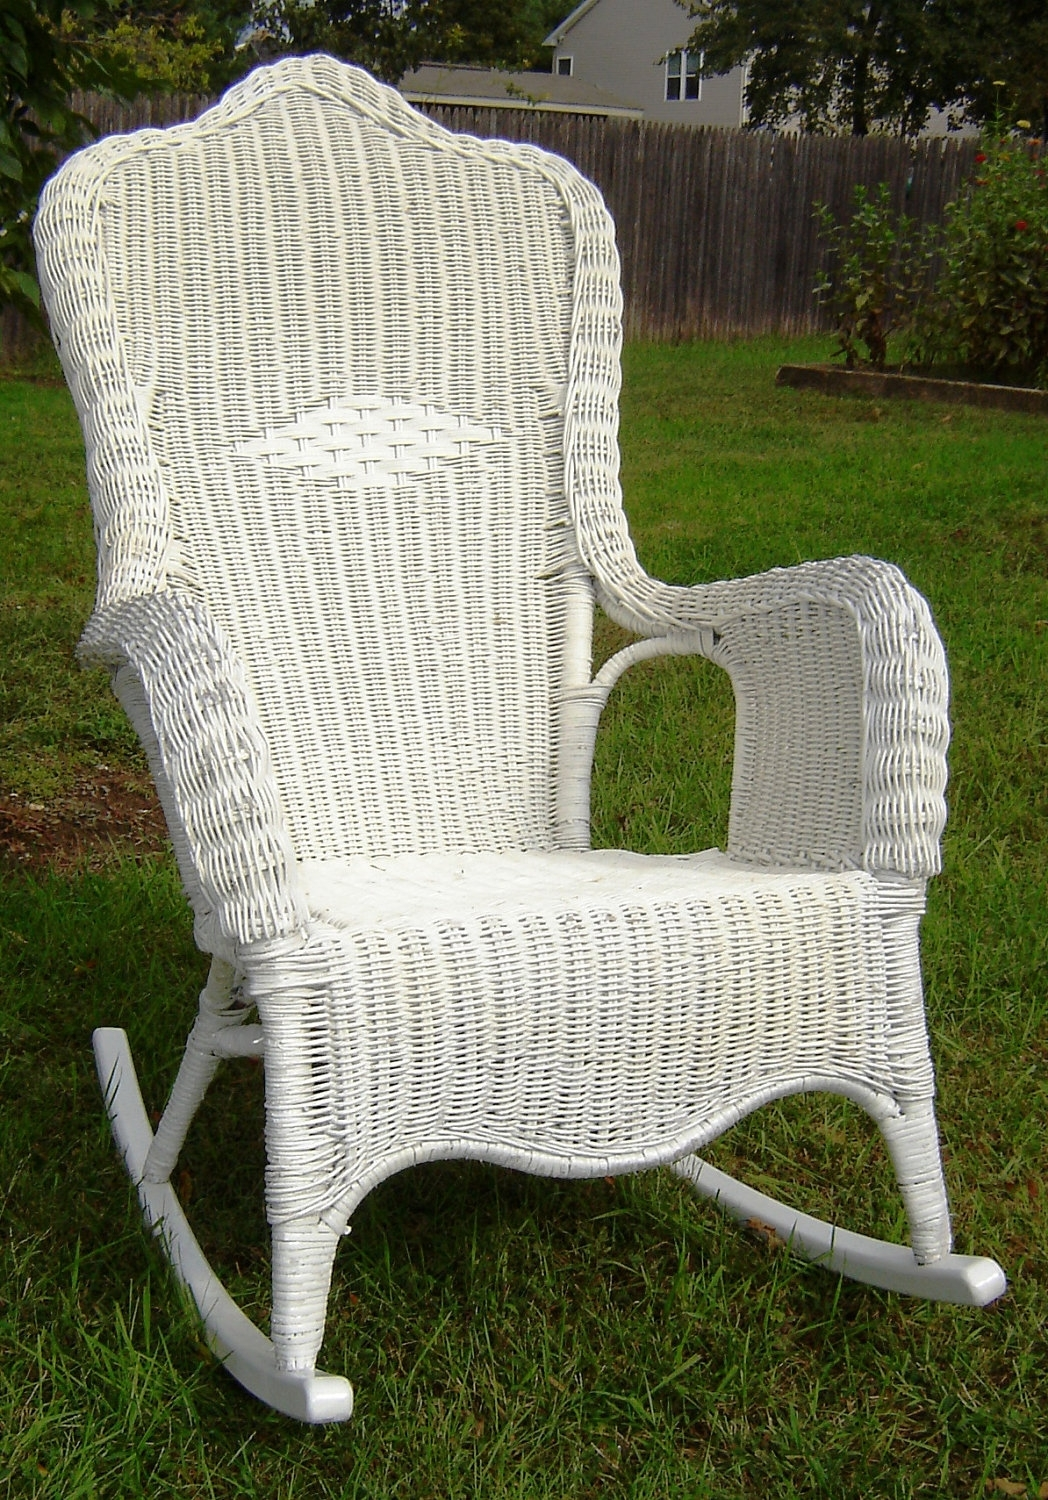 Antique Wicker Rocking Chair Graceful Antique Childrens Chair Of Regarding 2017 Antique Wicker Rocking Chairs (View 5 of 15)